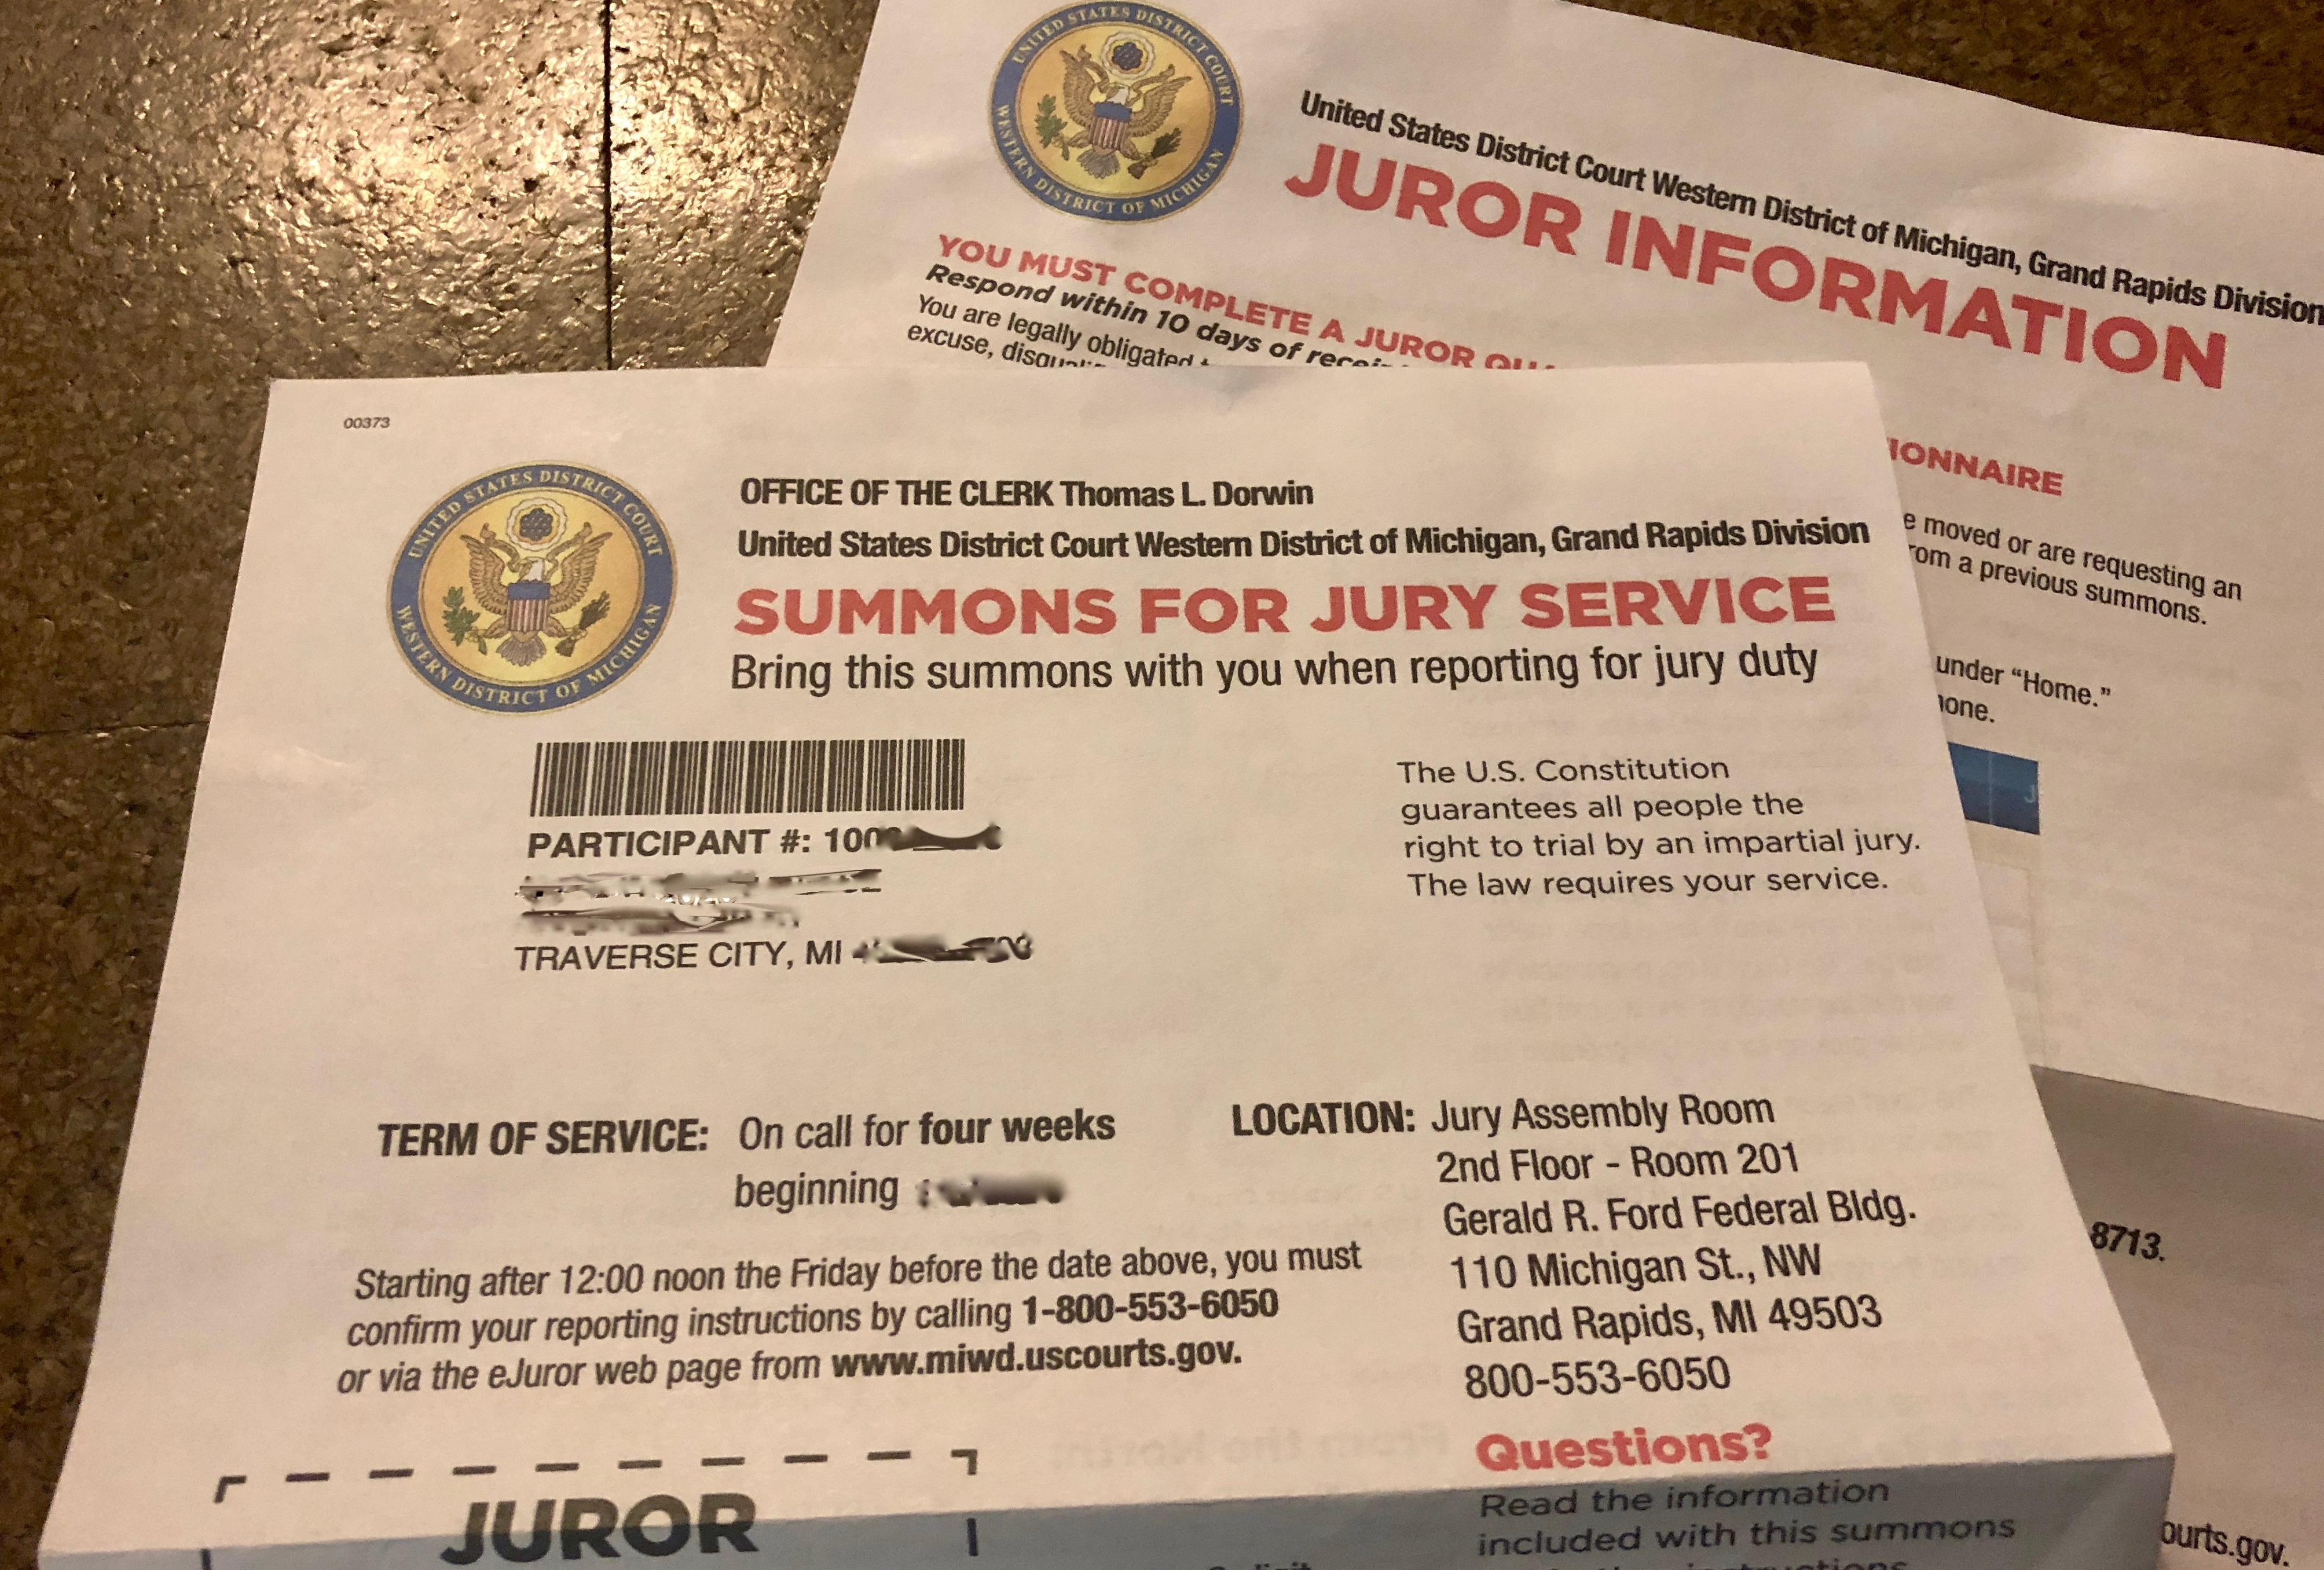 IMG 8671 - How To Get Out Of Jury Duty In Nevada